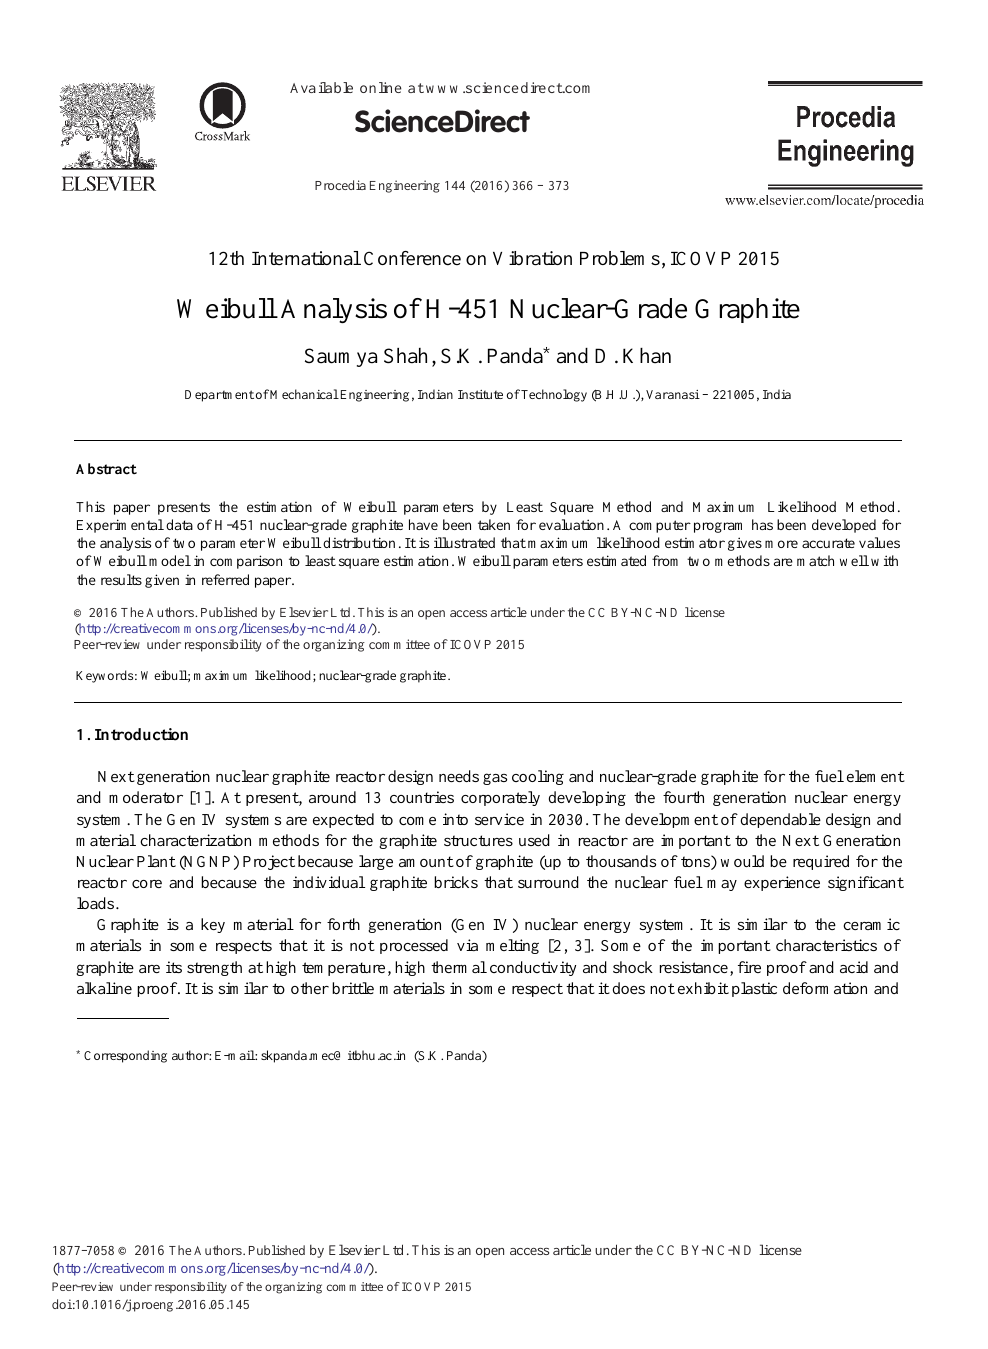 Weibull Analysis of H-451 Nuclear-Grade Graphite – topic of